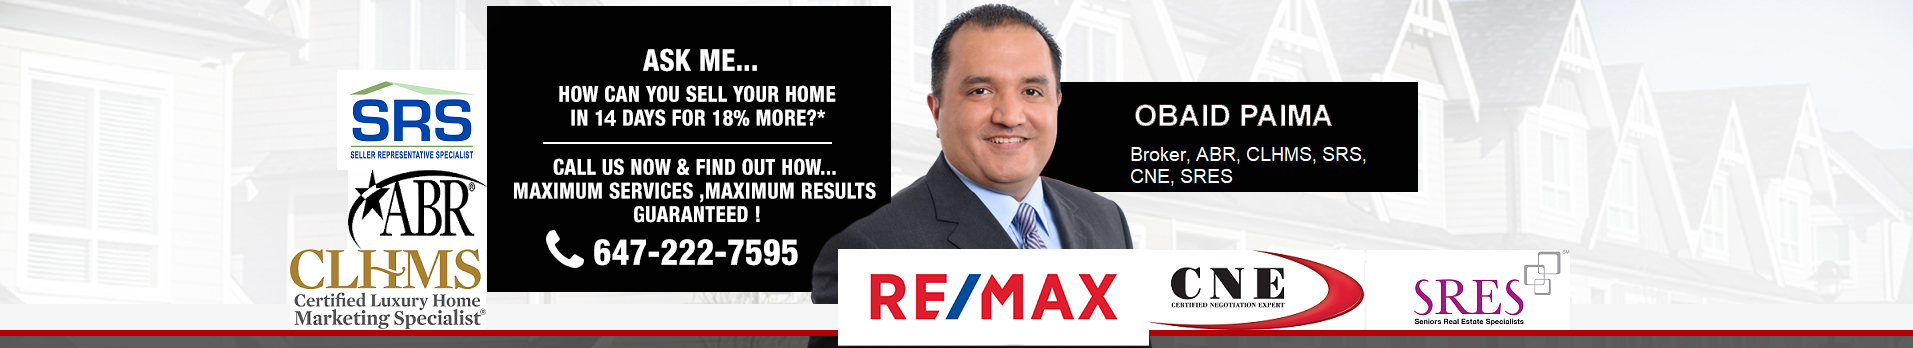 160 Sunforest Dr,  (MLS® #: W4853314) -  See this detached house for sale in Heart Lake West, Brampton